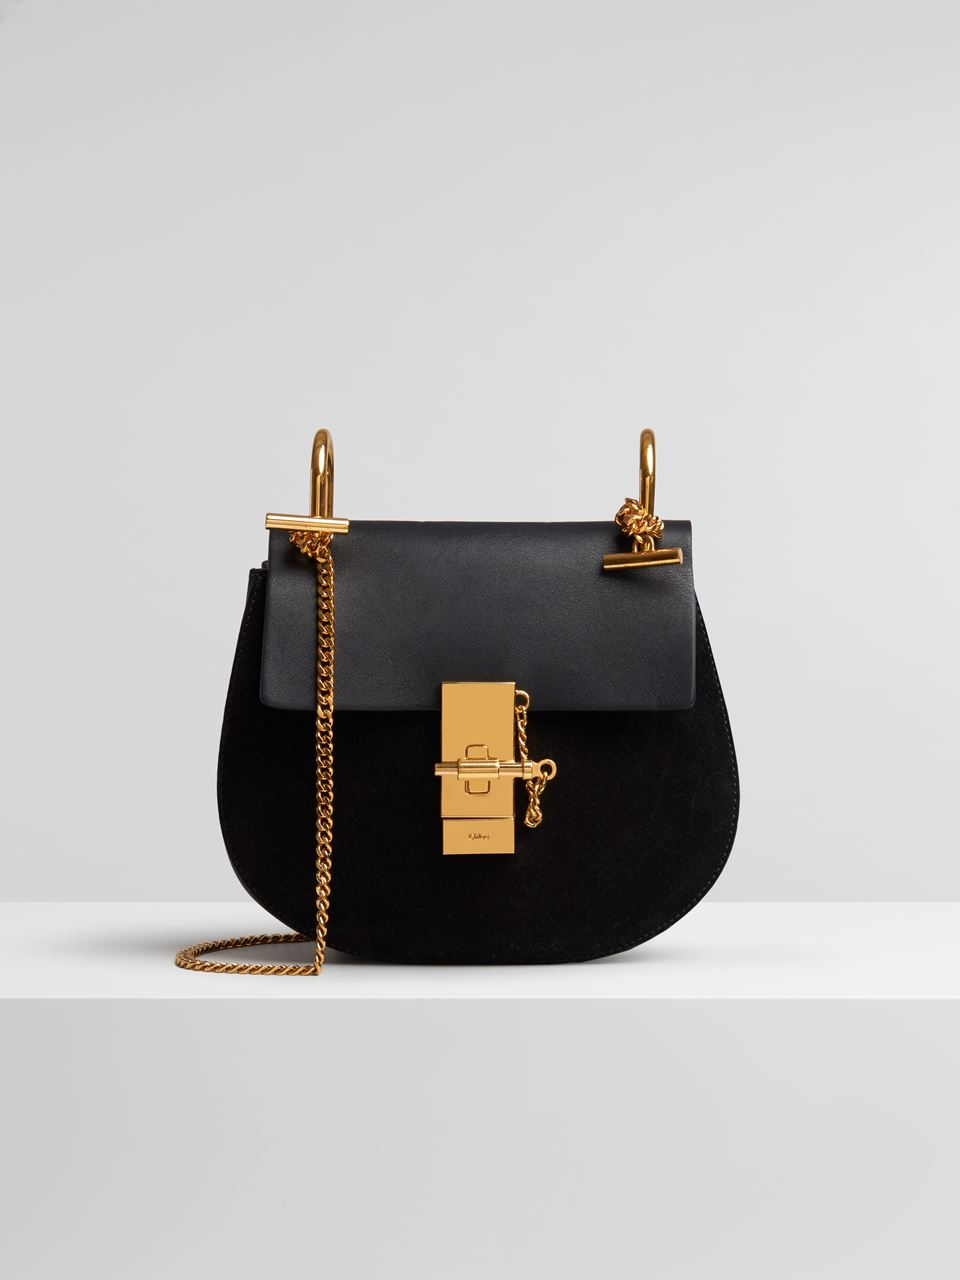 chloe purses prices - Chlo�� Drew bags for Women | Shop | Chlo�� Official Website